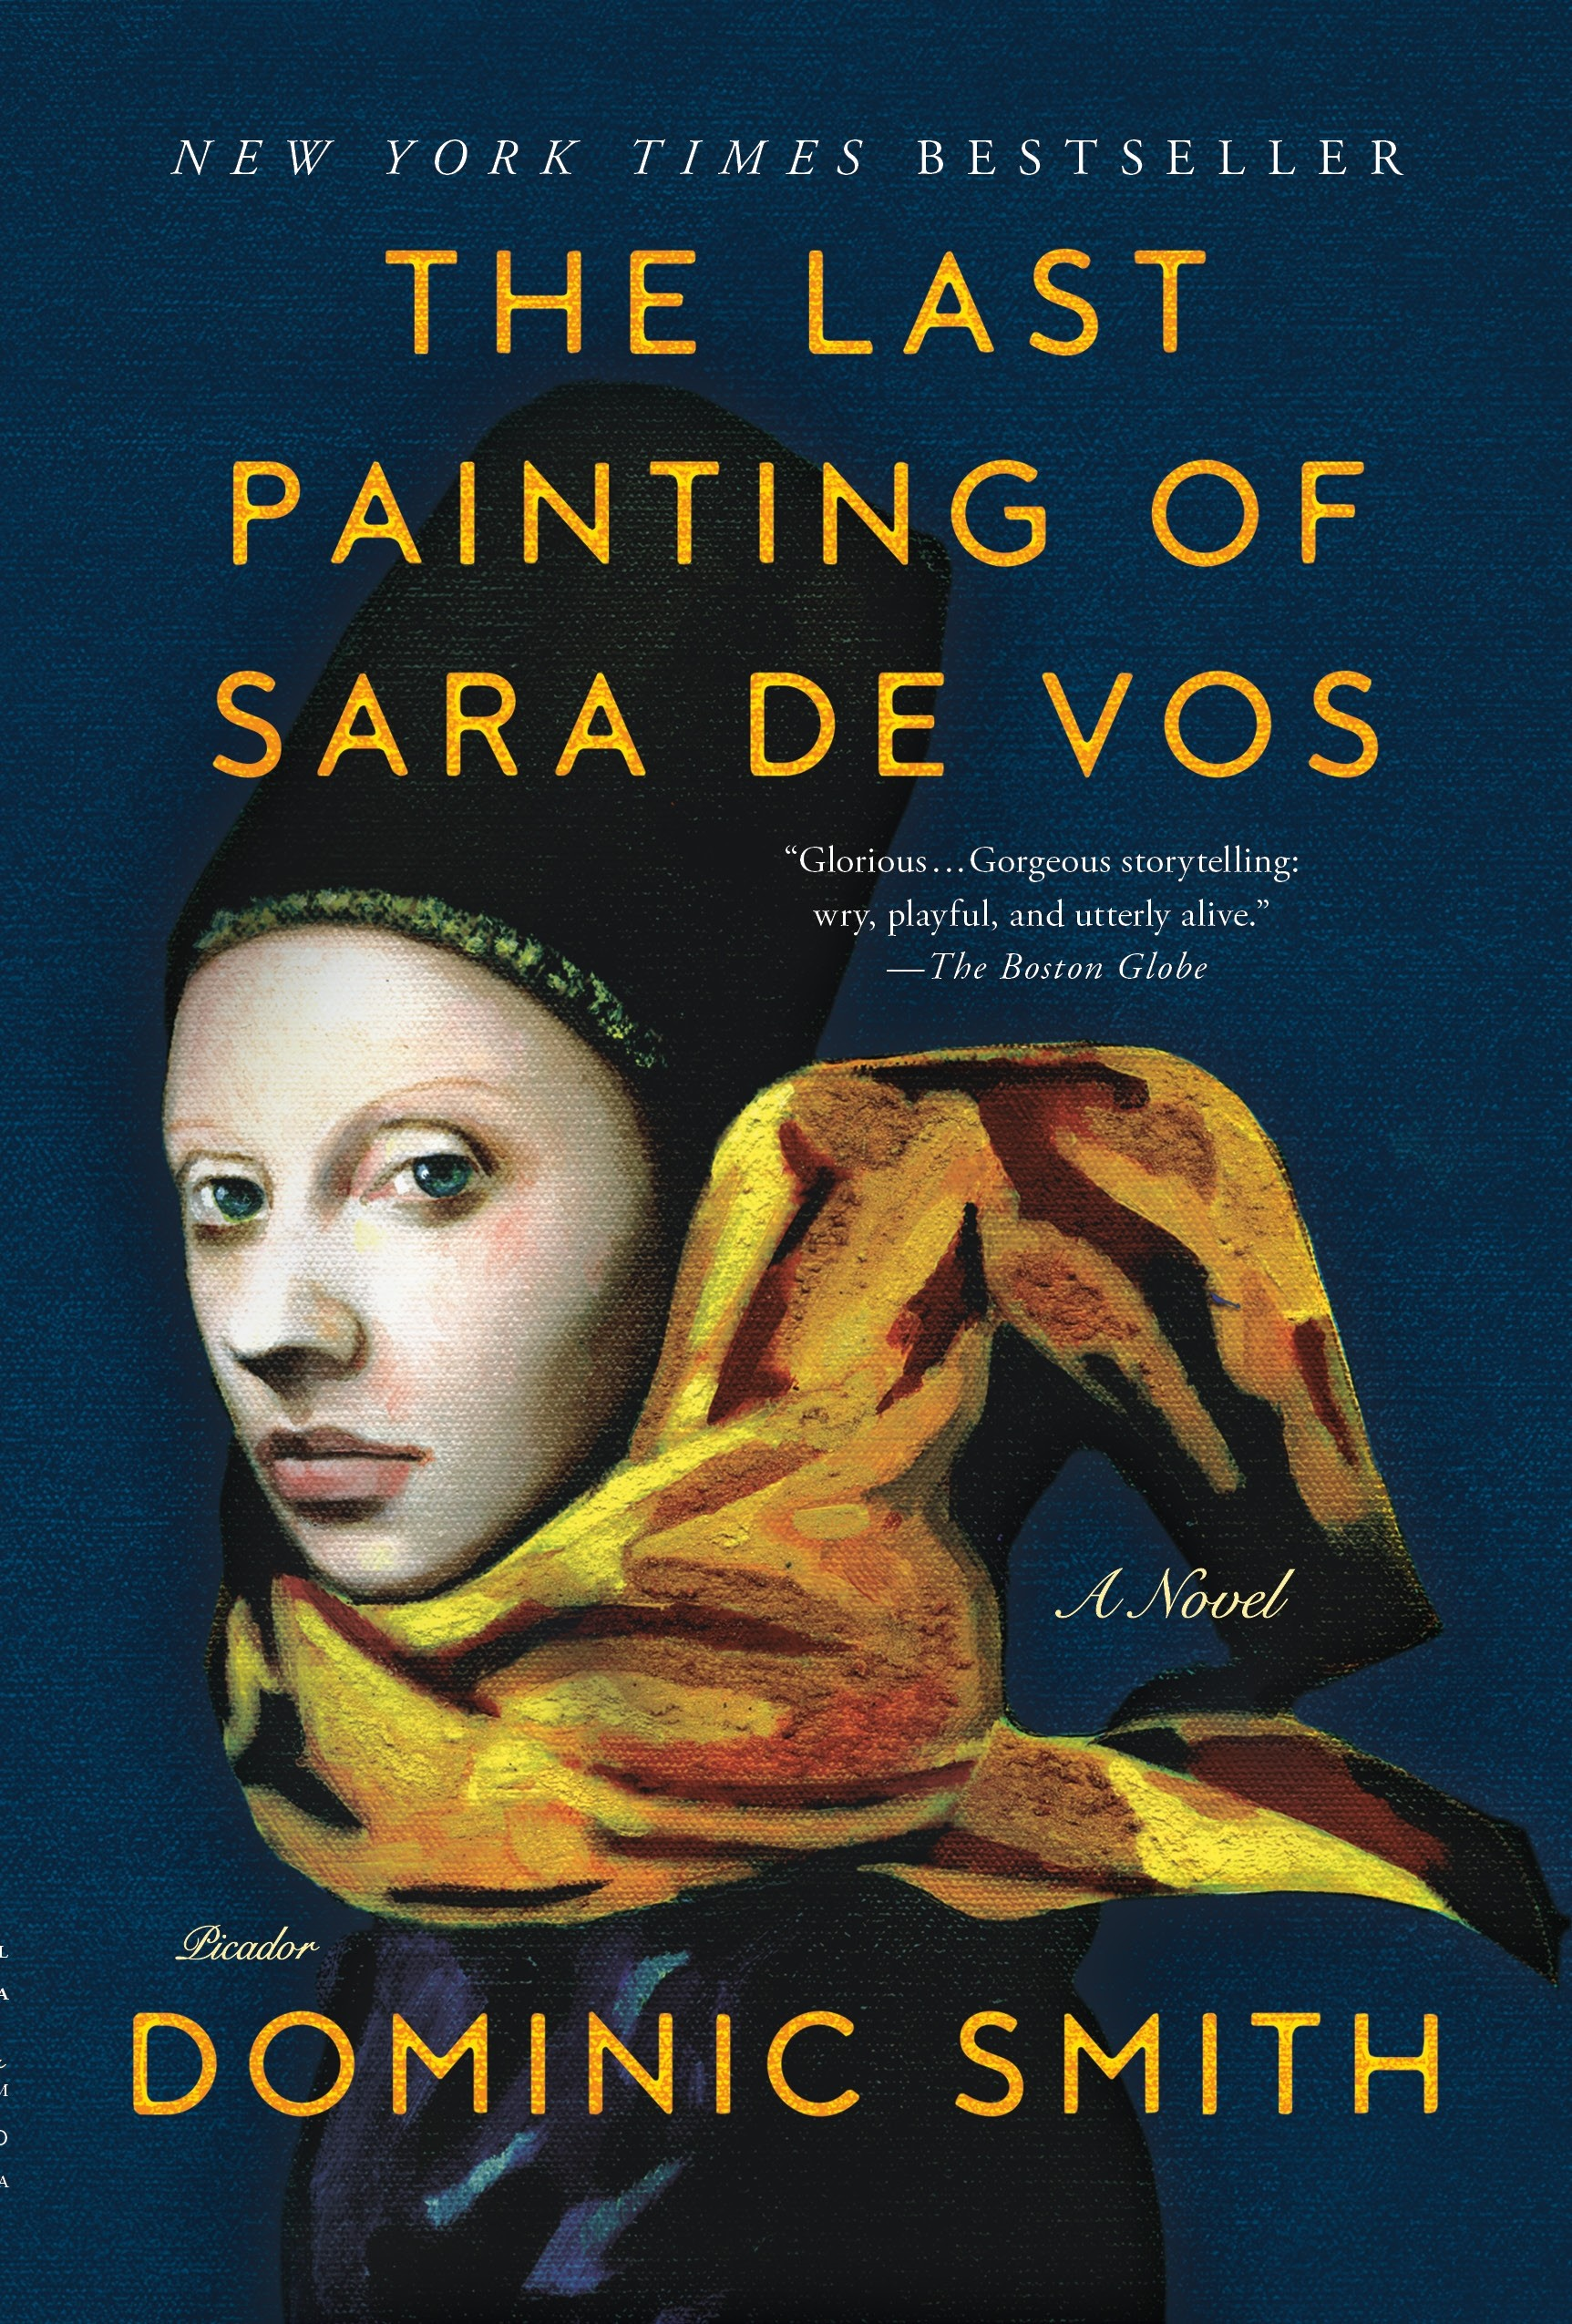 summer 2017 book club tour pick - last painting of sara de vos